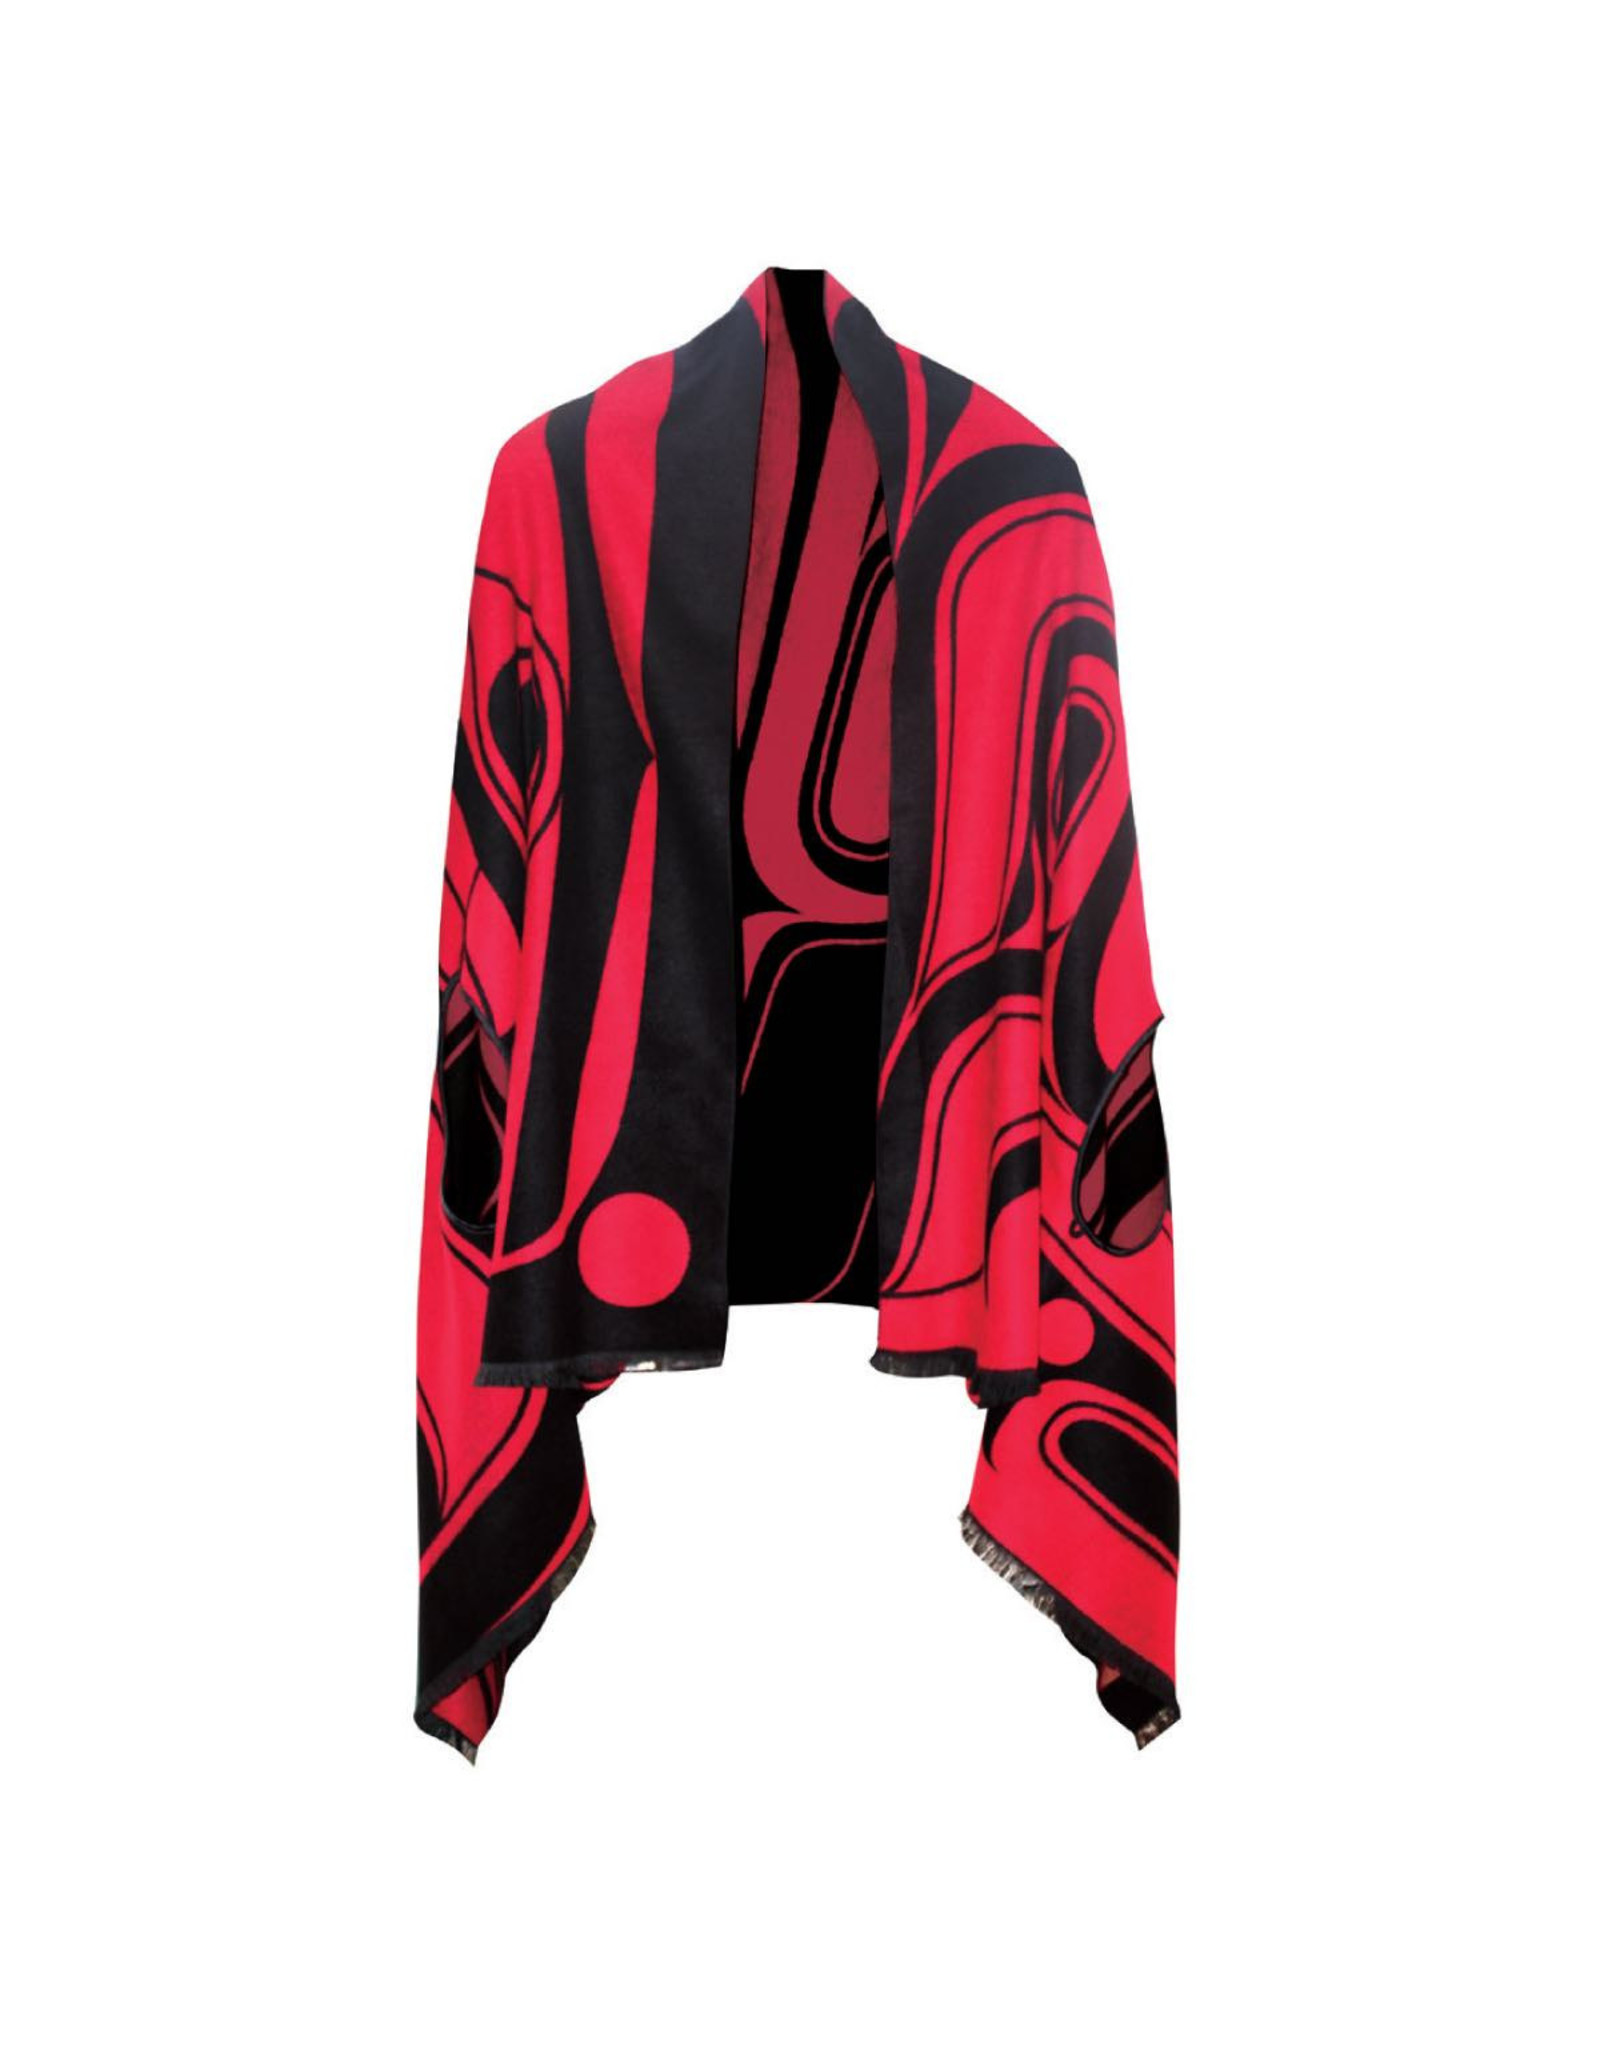 Reversible Fashion Cape - Tradition by Ryan Cranmer (Red & Black)